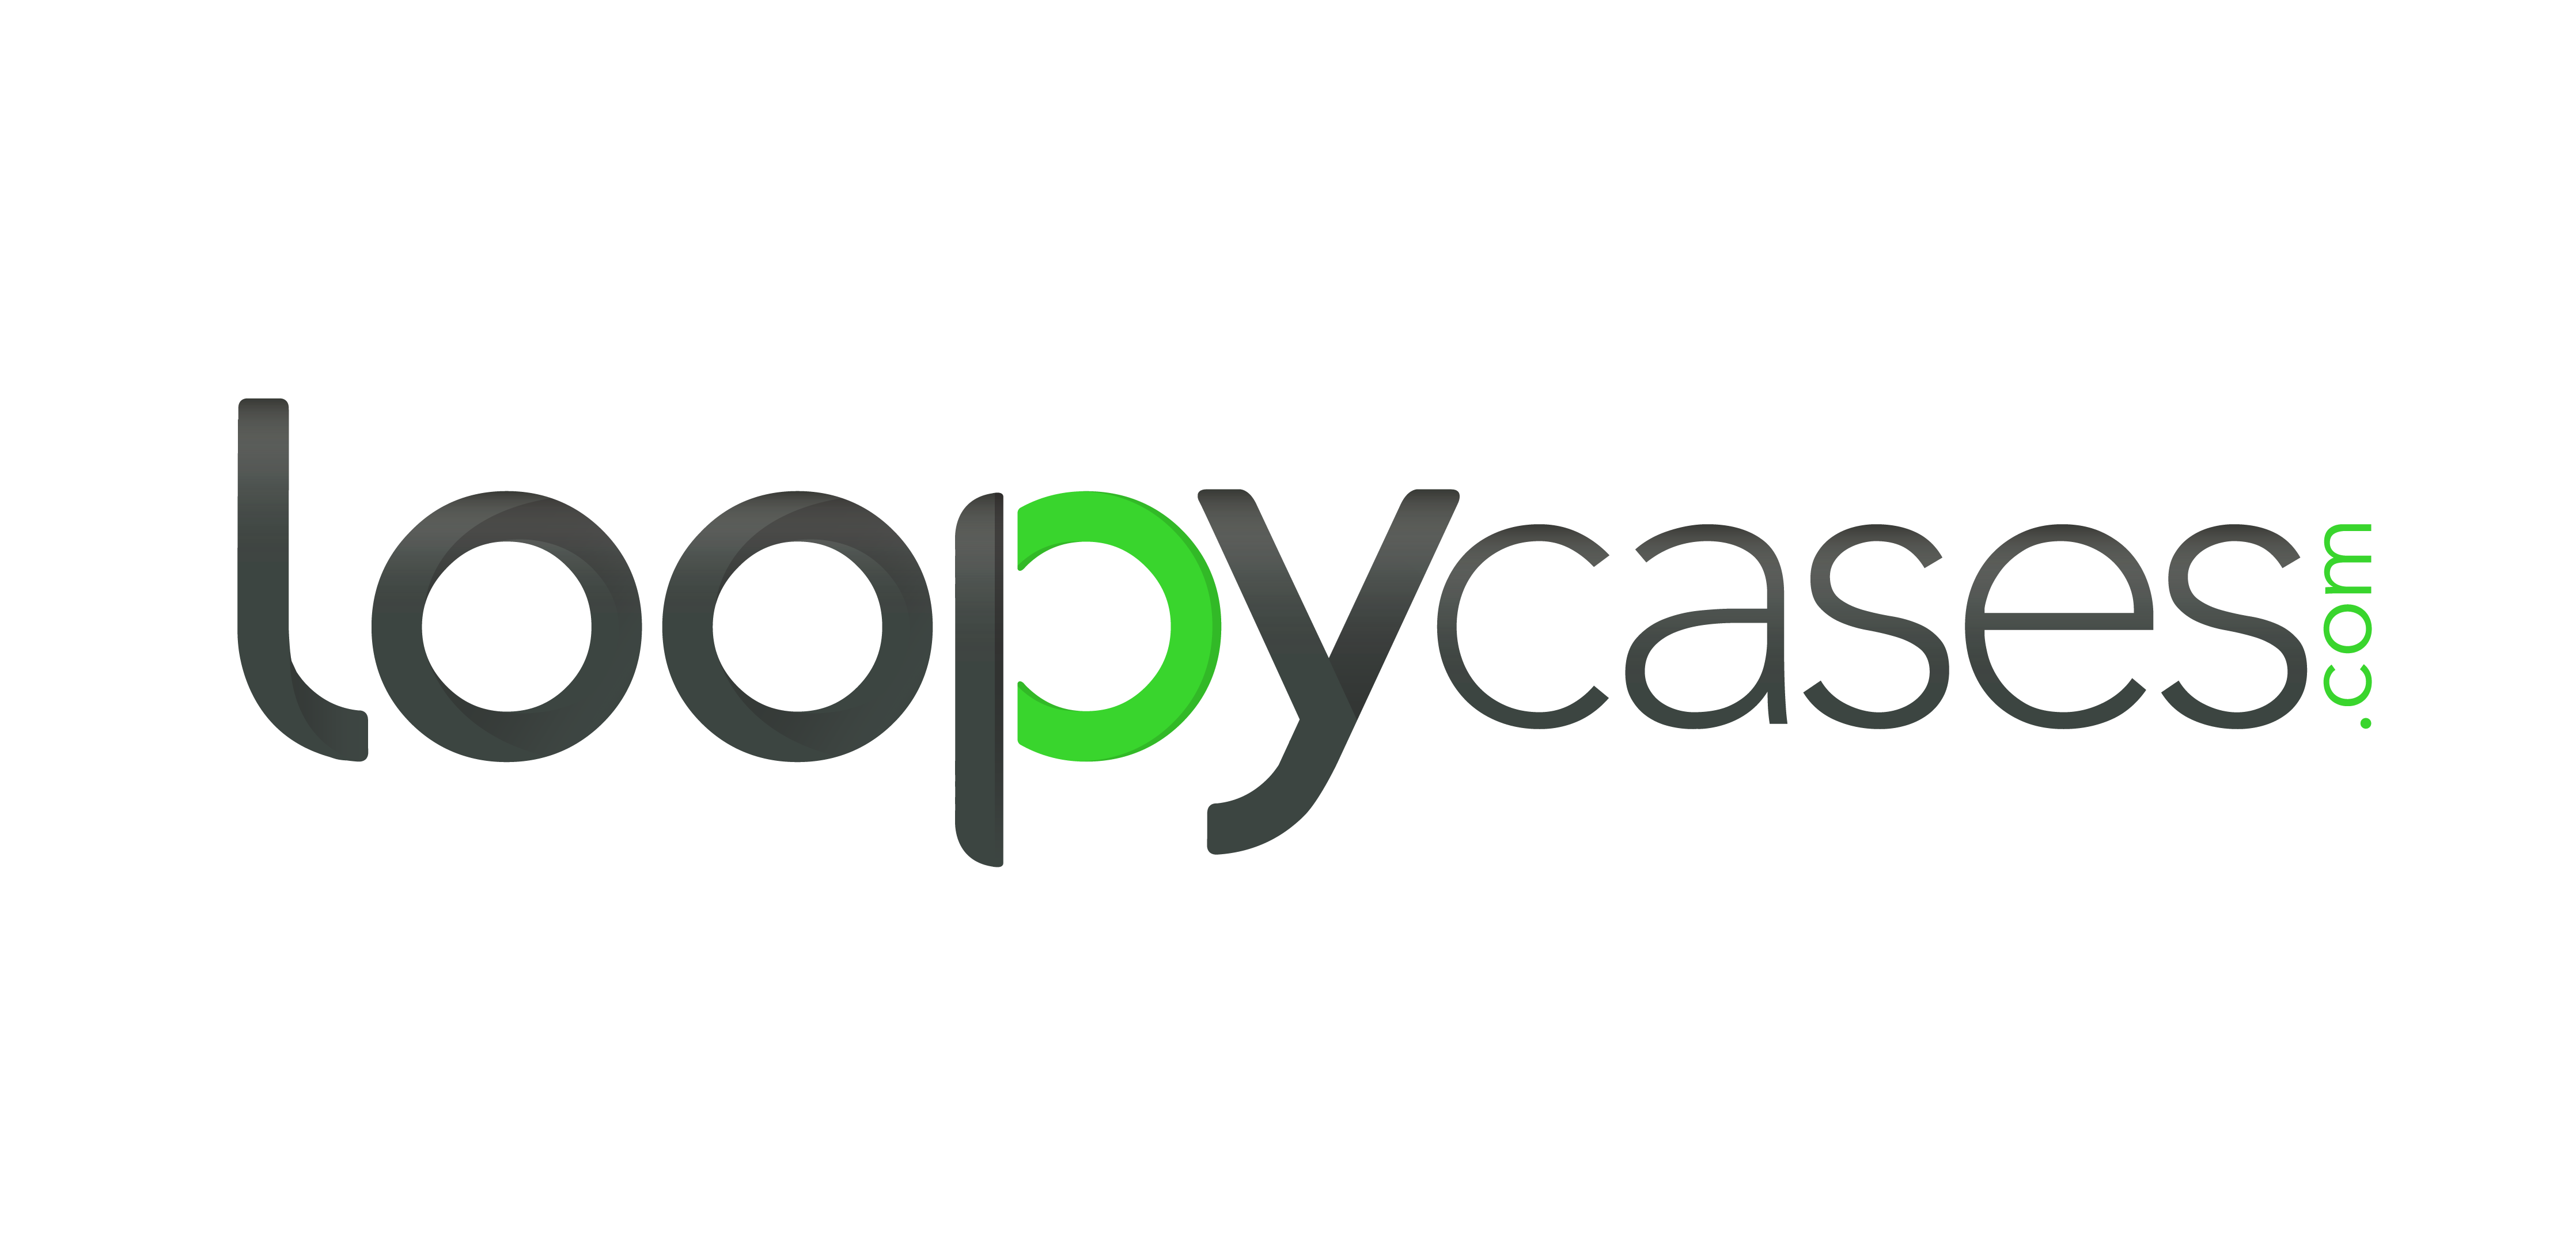 Loopy Cases